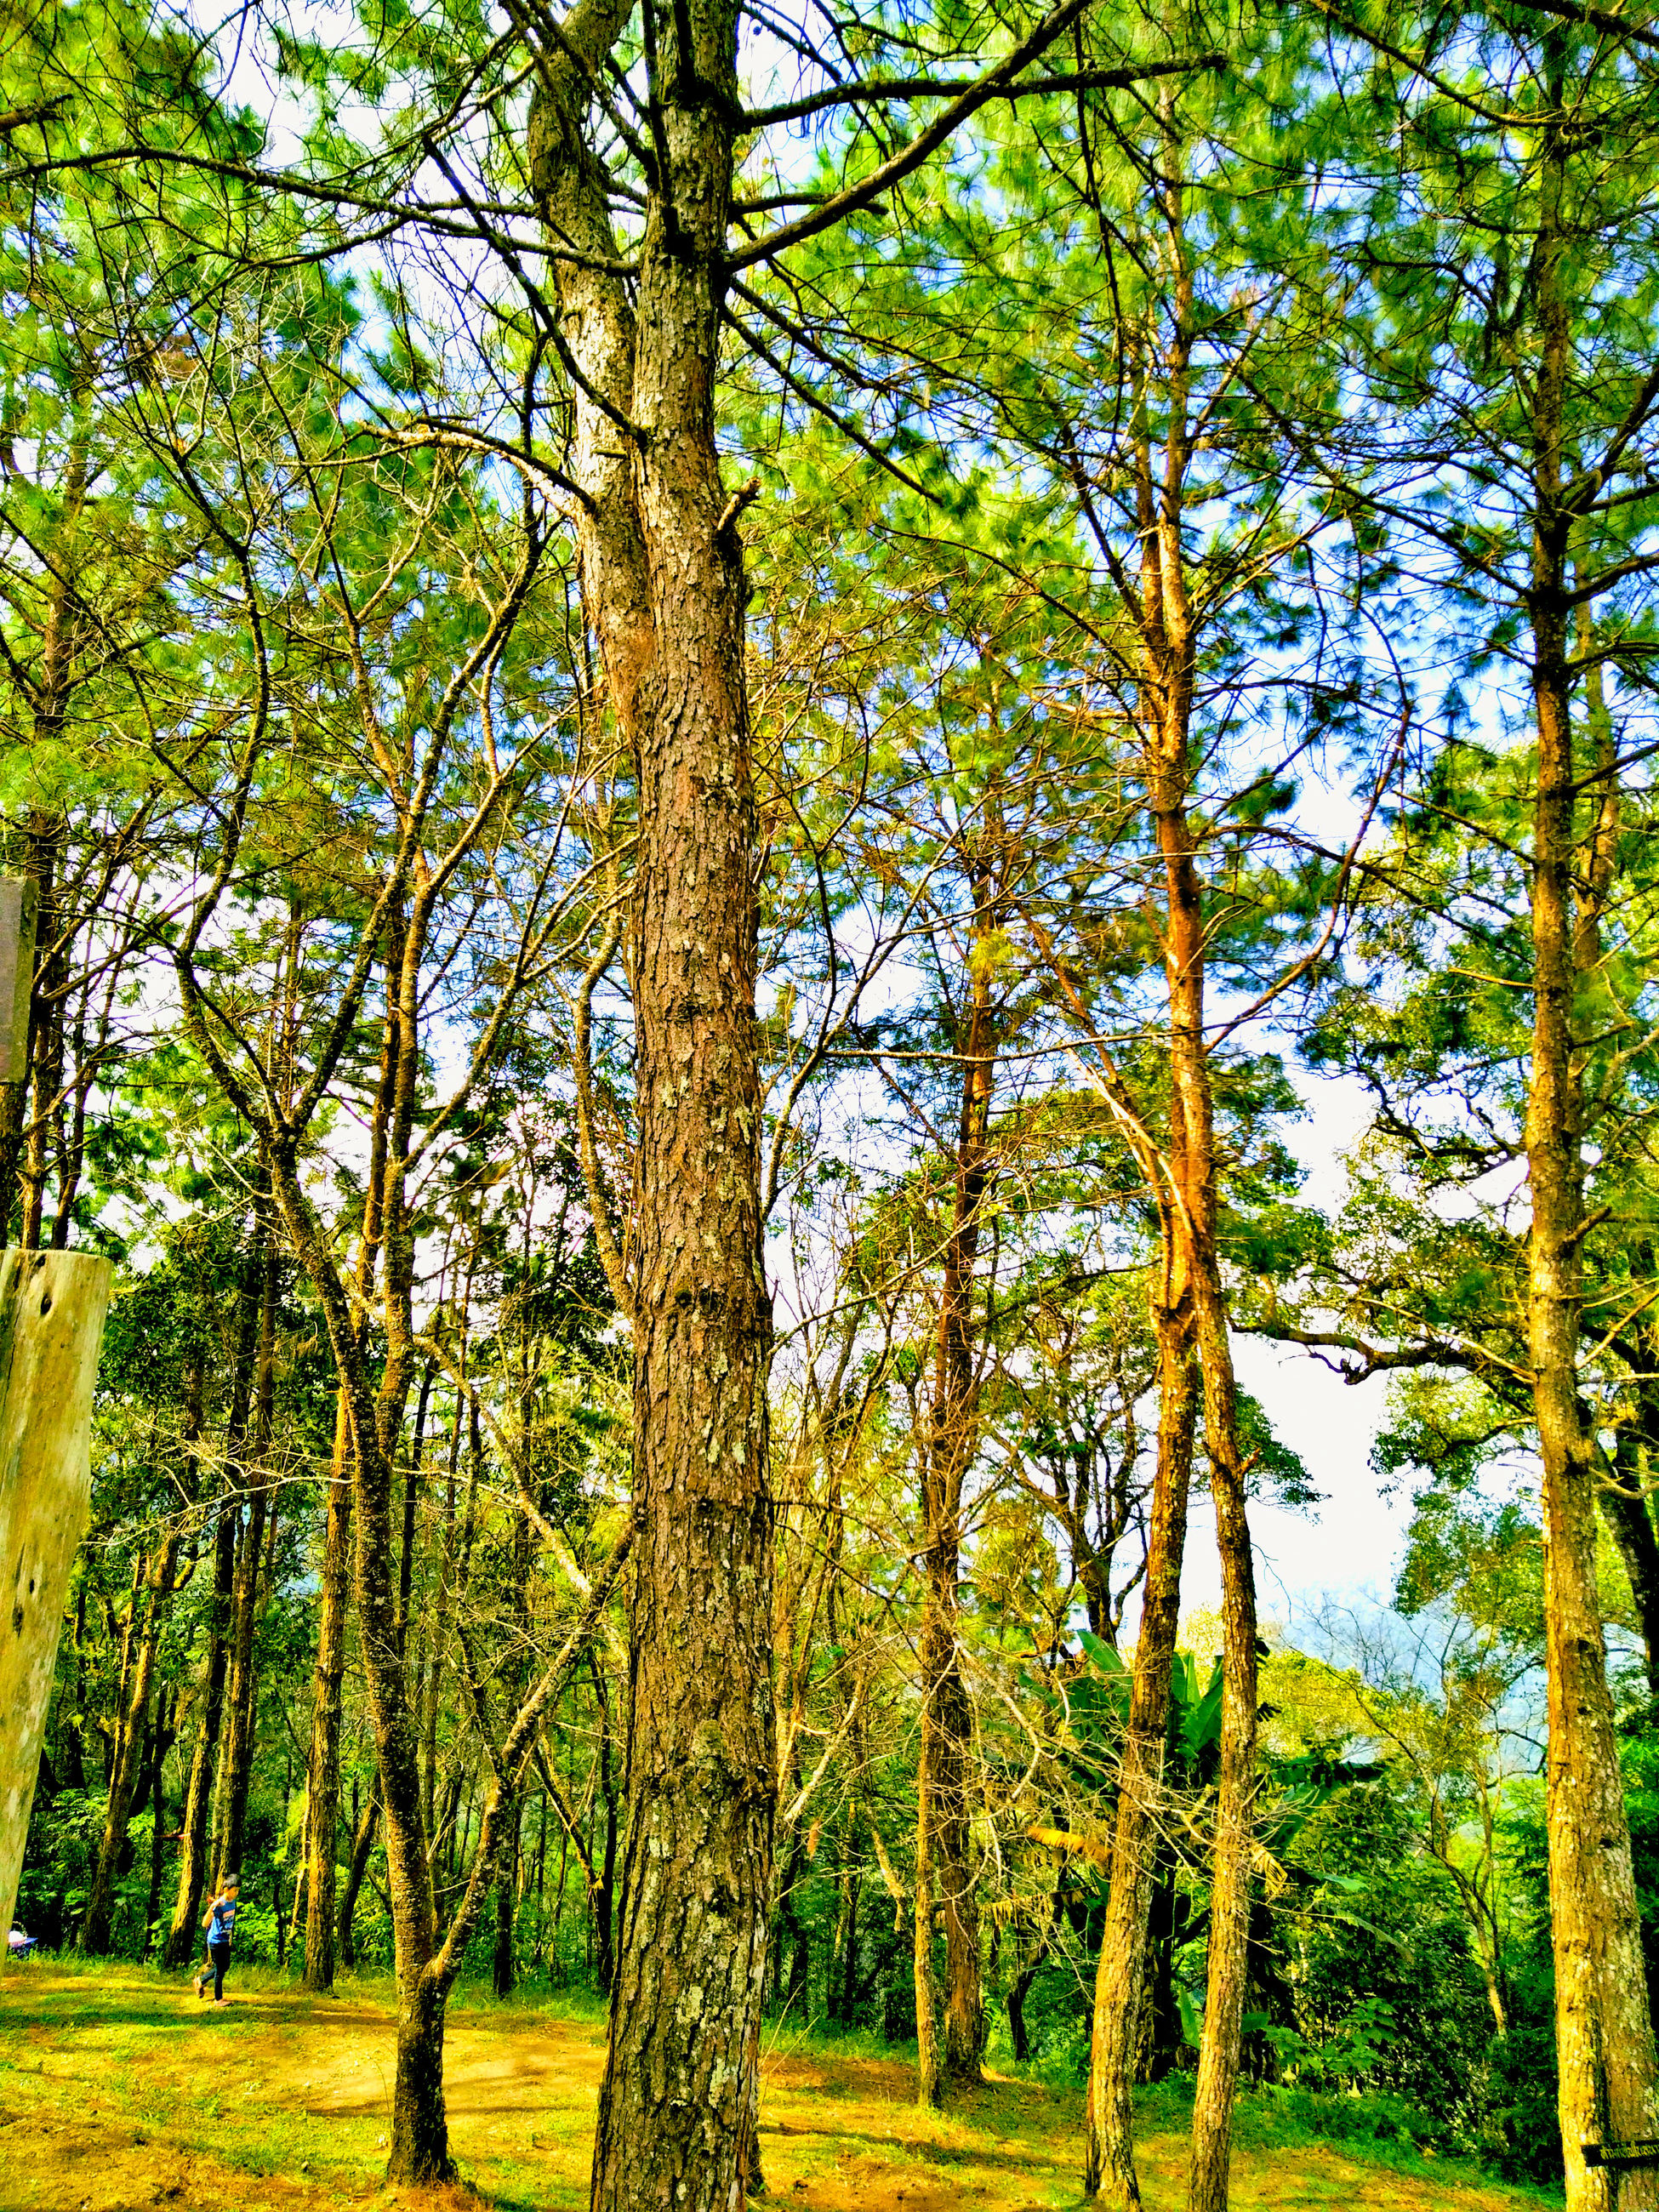 tree, nature, growth, green color, beauty in nature, no people, tranquility, outdoors, low angle view, forest, sky, day, scenics, lush - description